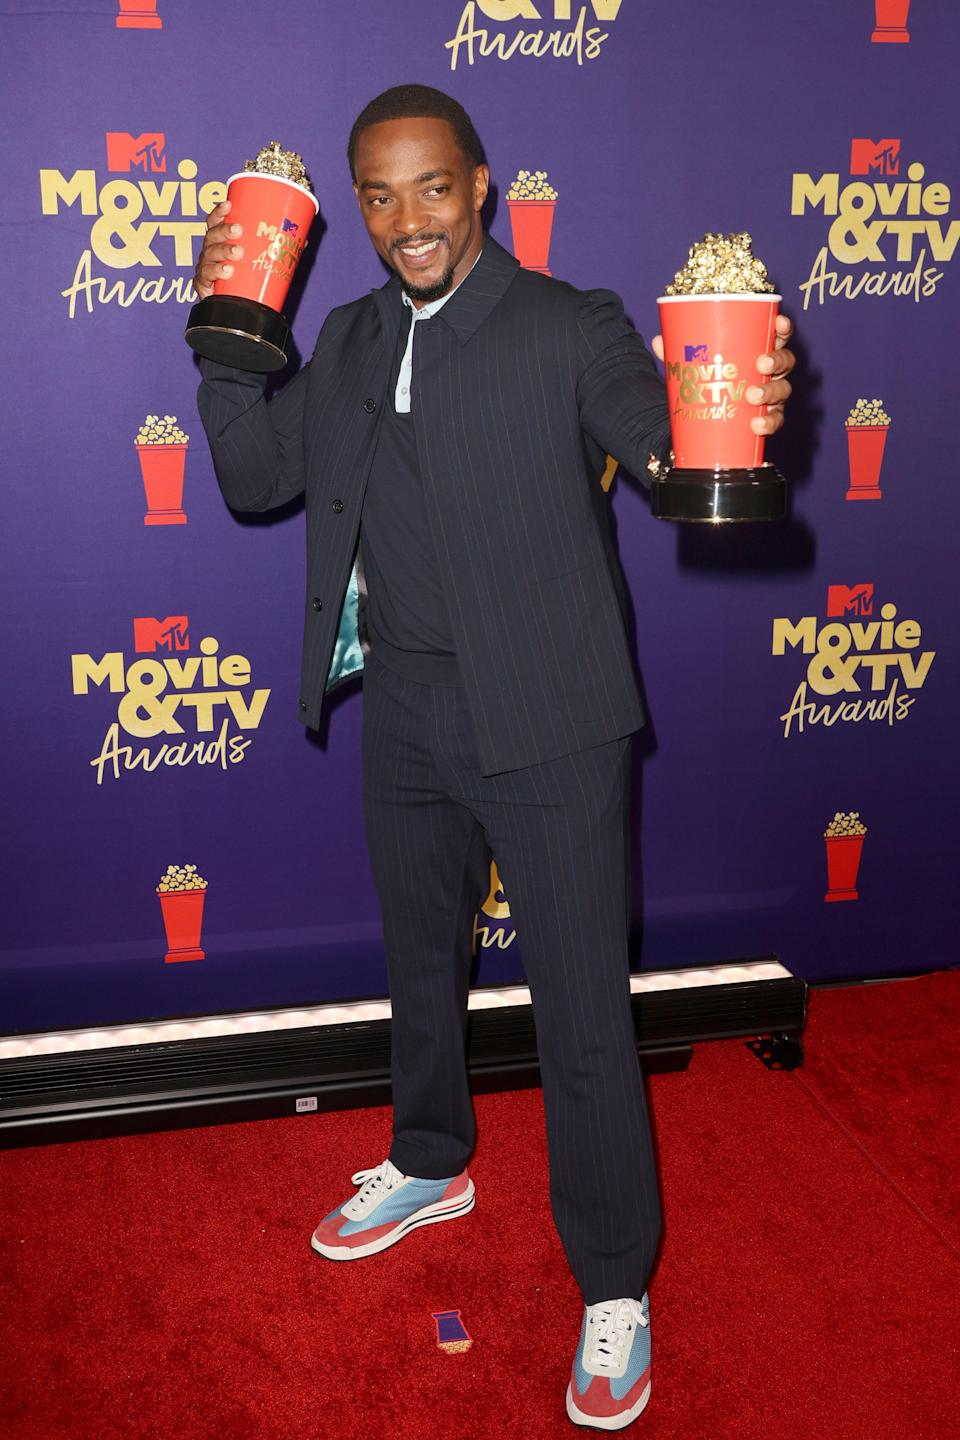 """Marvel actor Anthony Mackie wore a casual striped suit that drew all the attention to his red and blue sneakers. The color scheme almost felt like an ode to his Captain America costume in Disney+ series <a href=""""https://www.teenvogue.com/story/what-falcon-and-the-winter-soldier-teaches-us-about-fandom-misogynoir?mbid=synd_yahoo_rss"""" rel=""""nofollow noopener"""" target=""""_blank"""" data-ylk=""""slk:Falcon and the Winter Soldier."""" class=""""link rapid-noclick-resp""""><em>Falcon and the Winter Soldier.</em></a>"""